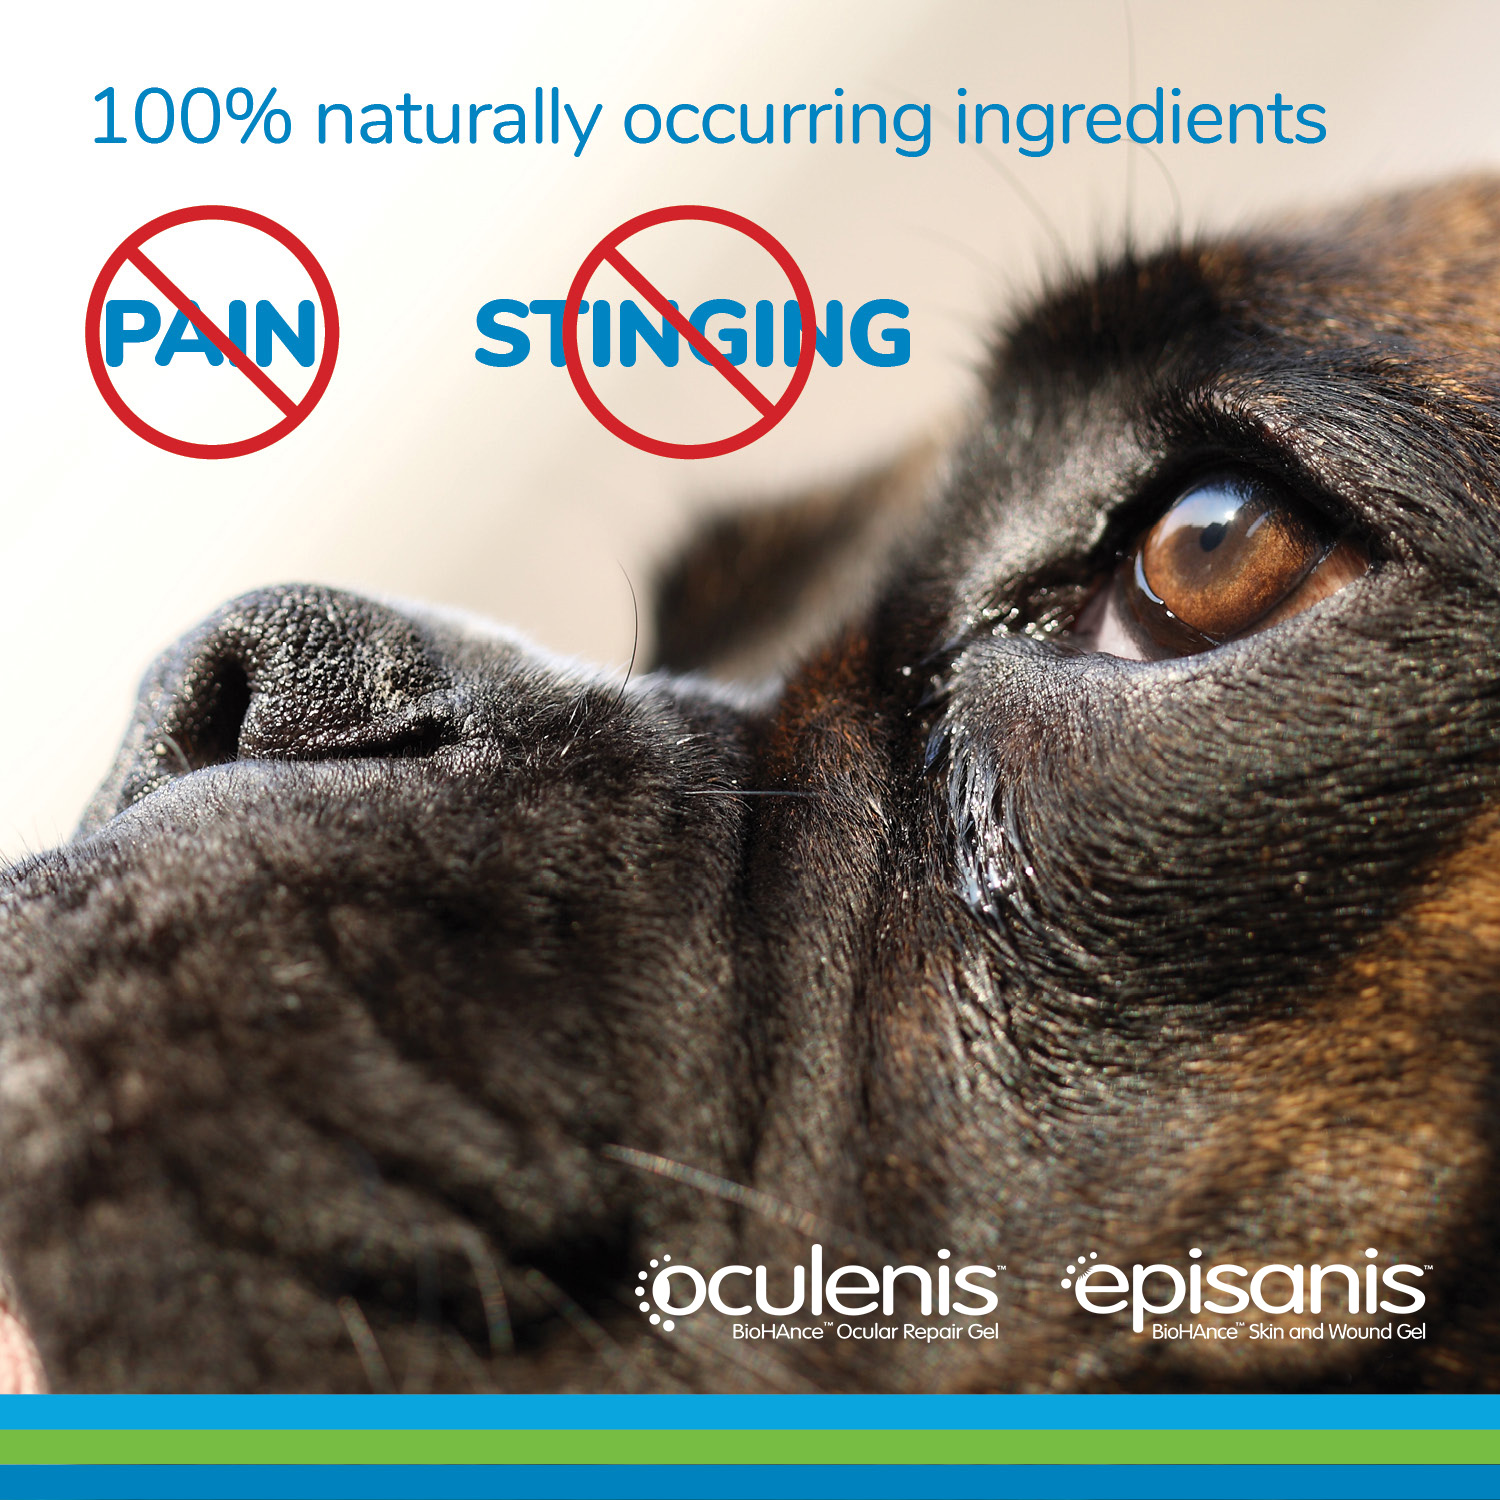 100% naturally occurring ingredients. No pain. No Stinging. Episanis. Ocunovis.